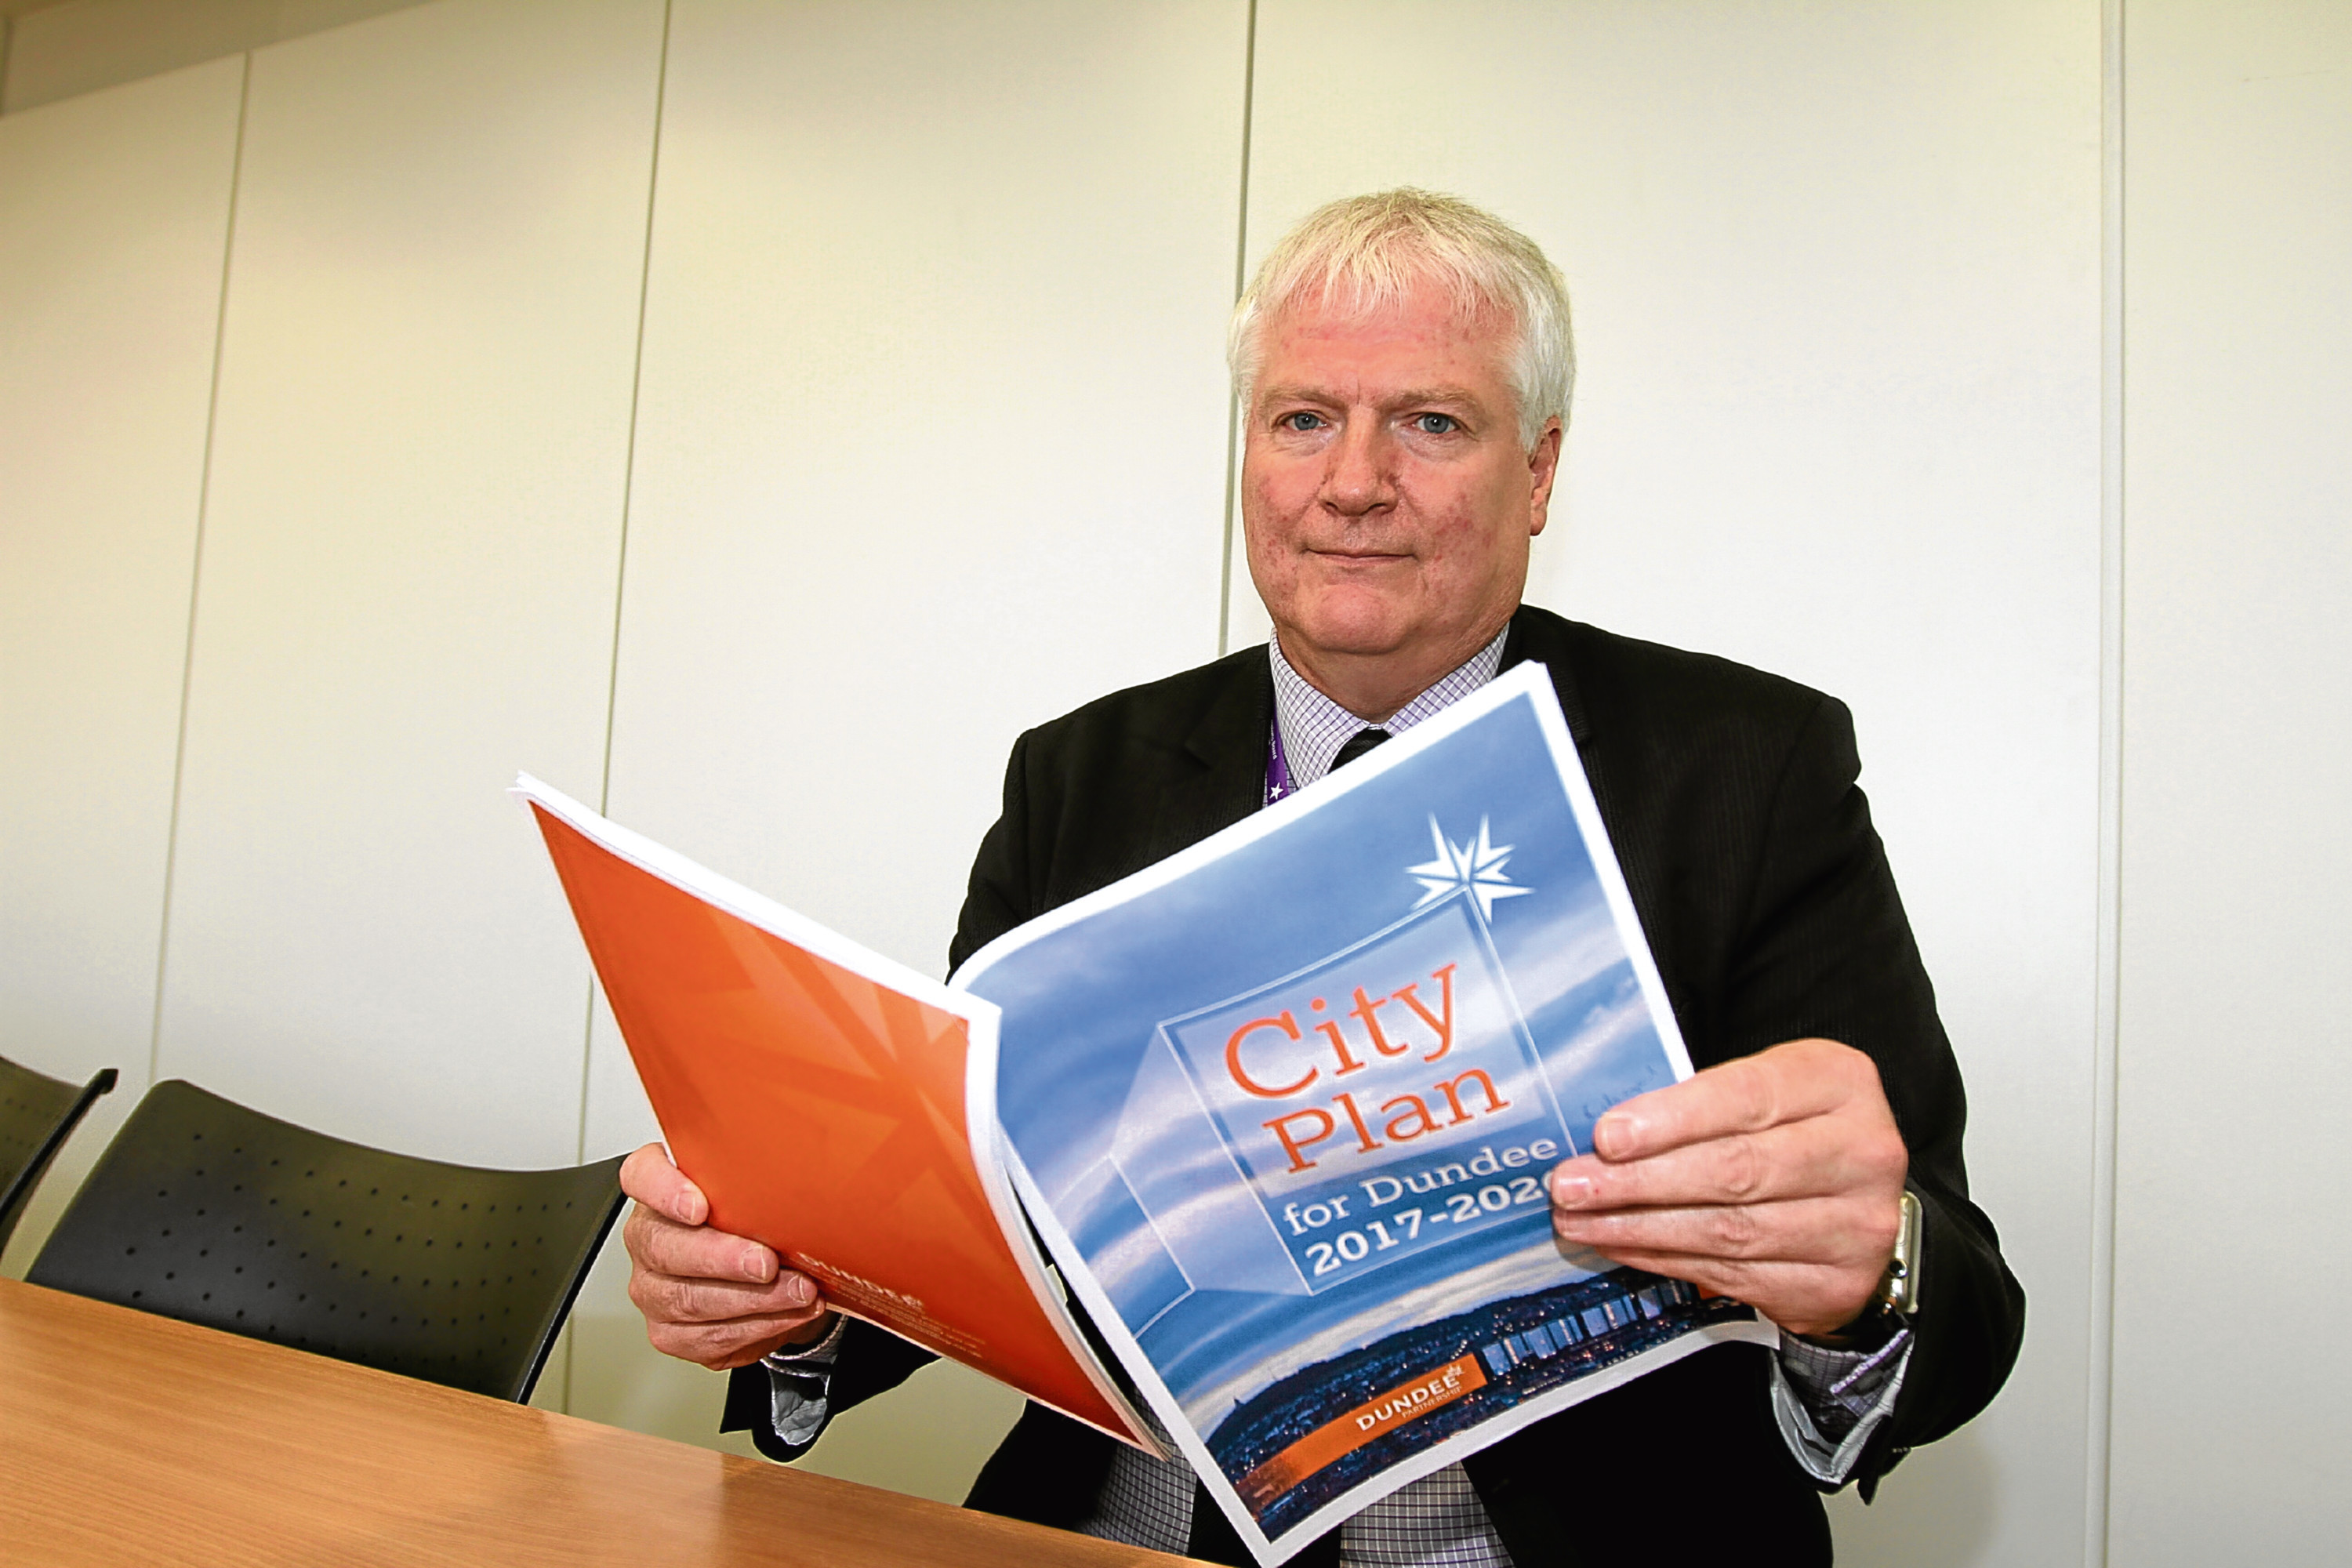 Paul Clancy with a copy of the Dundee City Plan